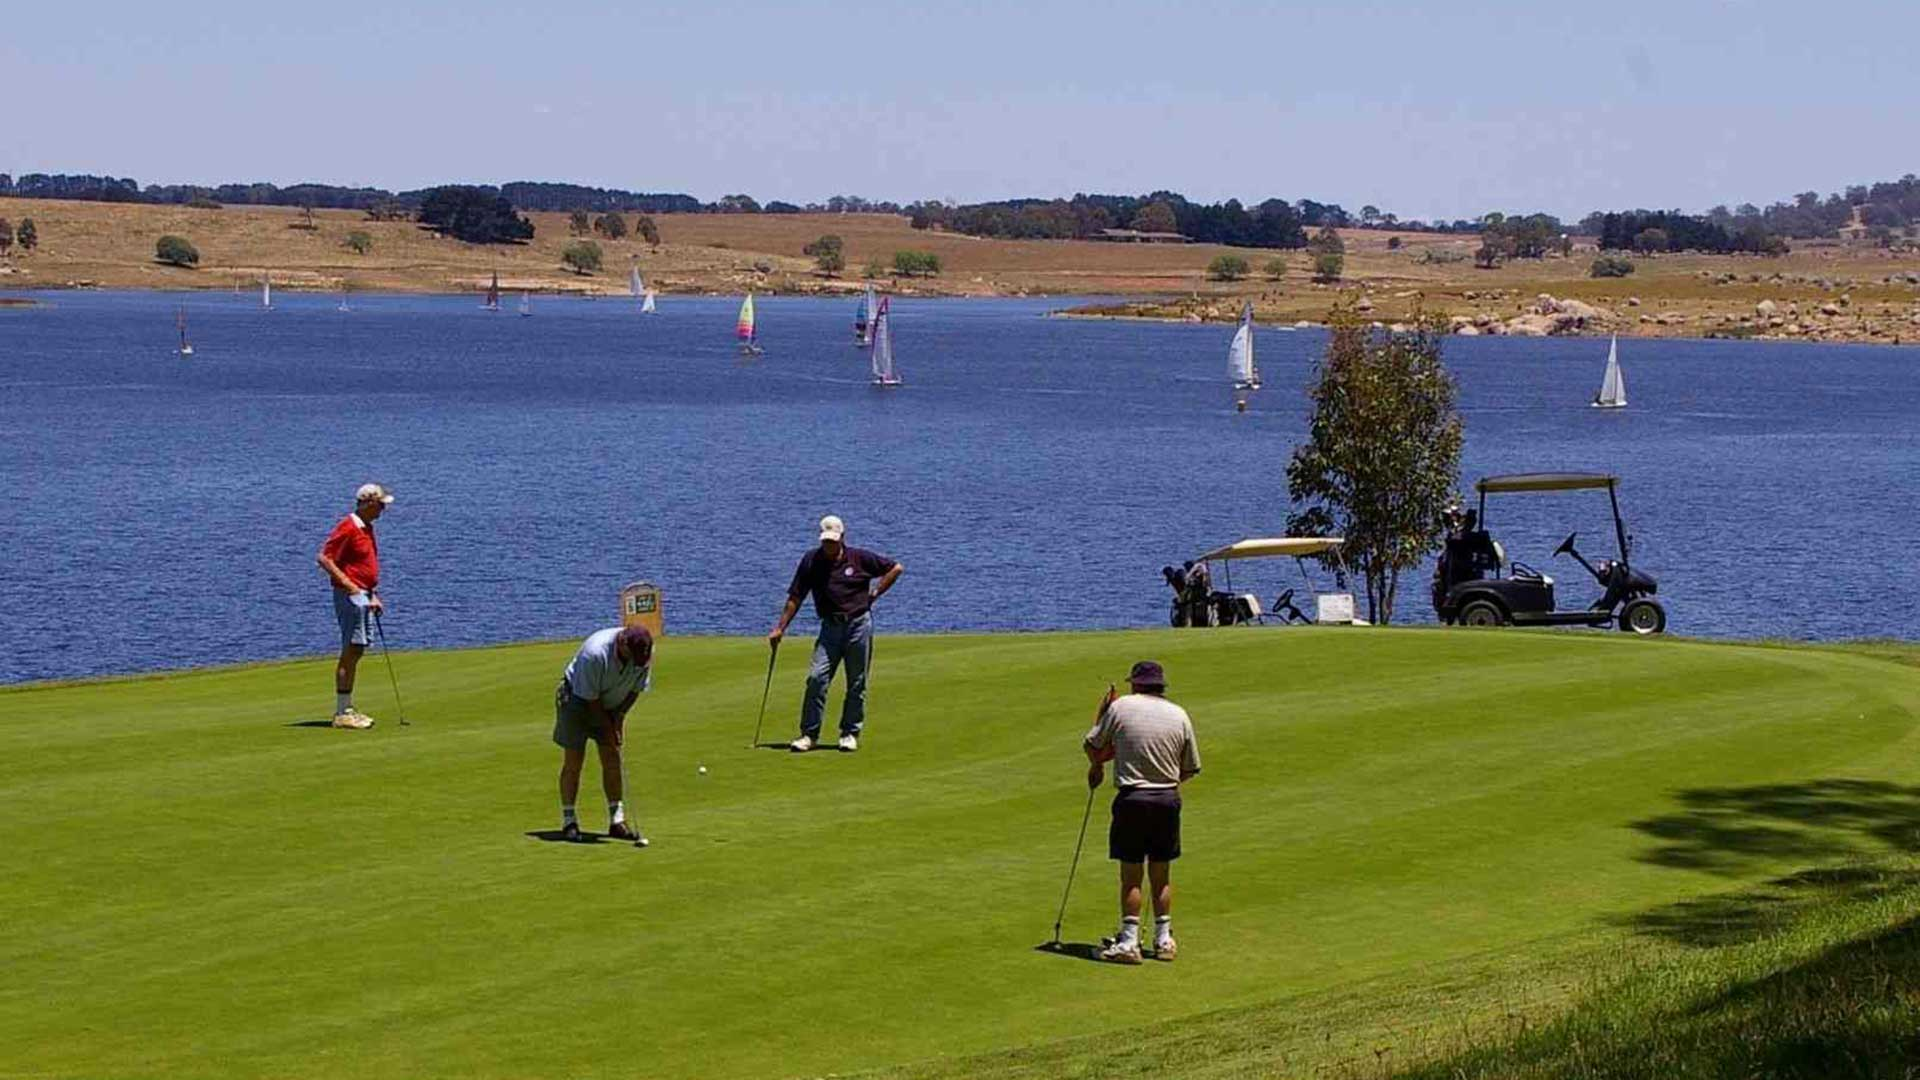 Sports - Oberon Golf Course | Visit Oberon